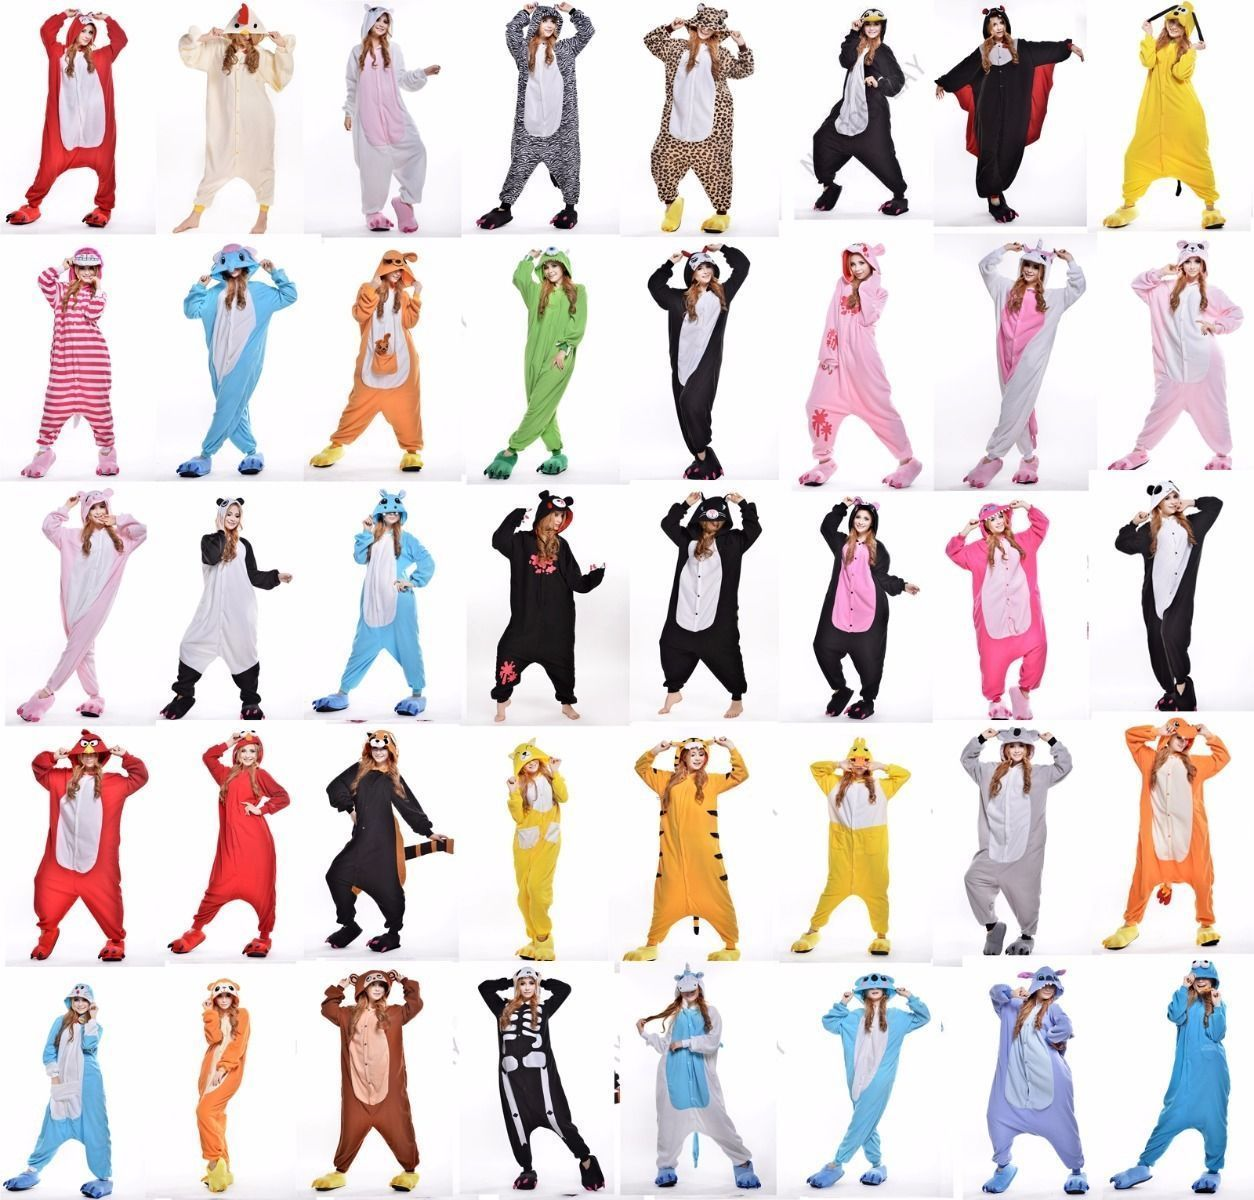 Primary image for Animal Onesies Kid Teenage Adult Unisex Kigurumi Cosplay Costume Pyjamas Pajamas